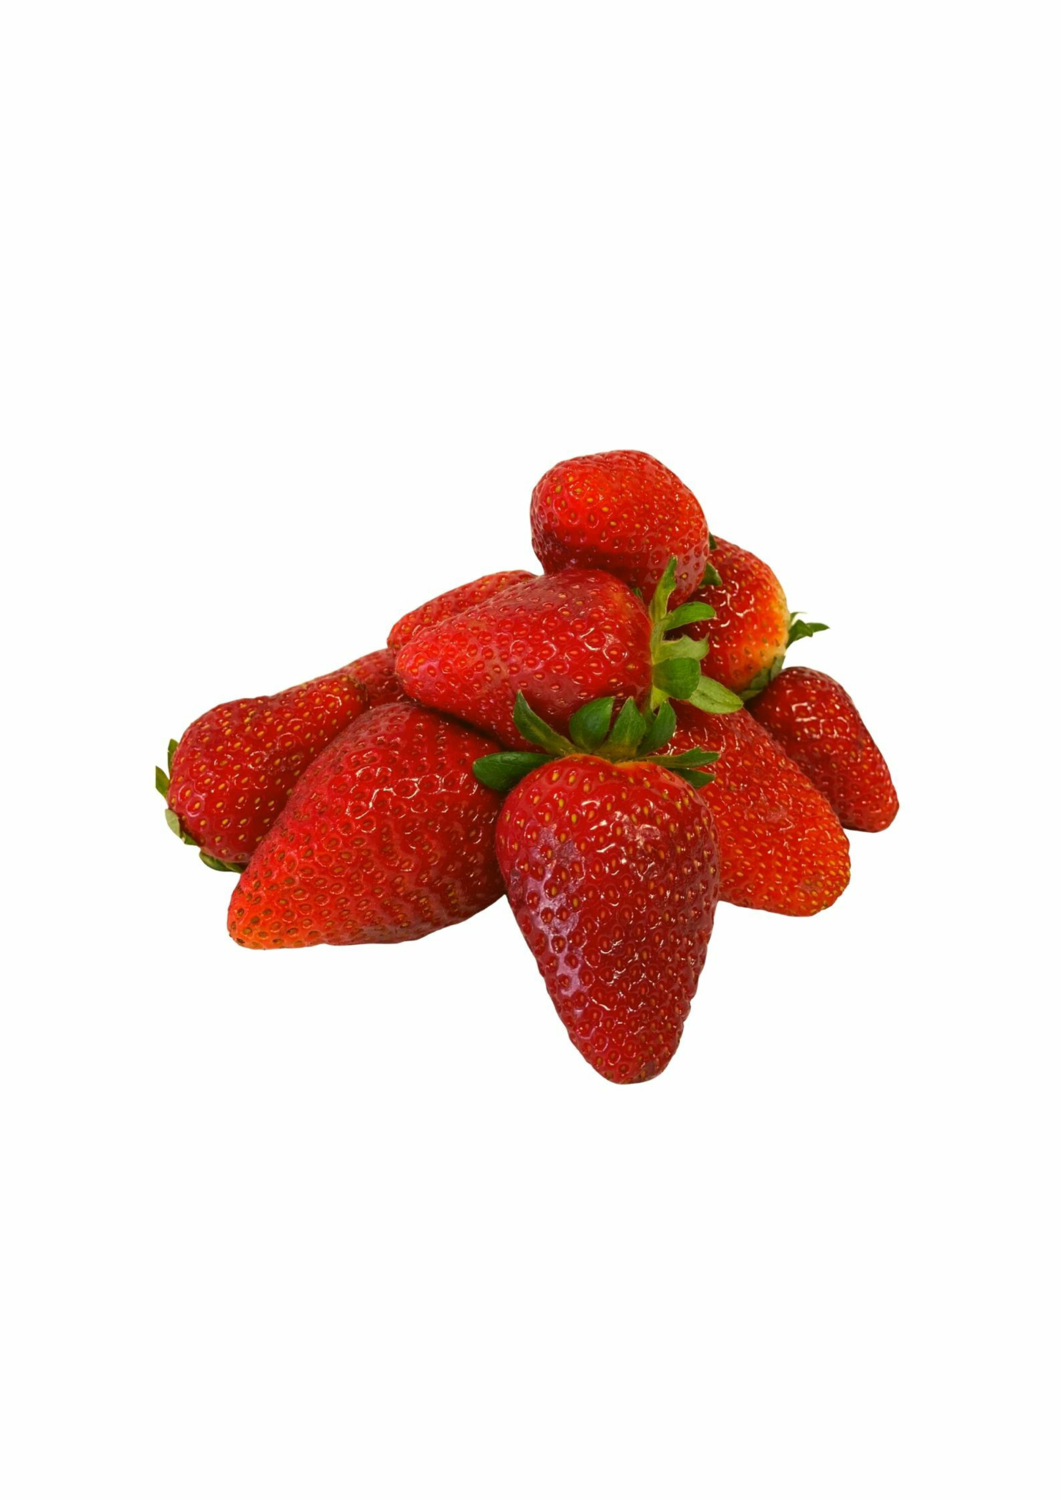 SPECIAL 2 STRAWBERRIES $6.00 (250G)